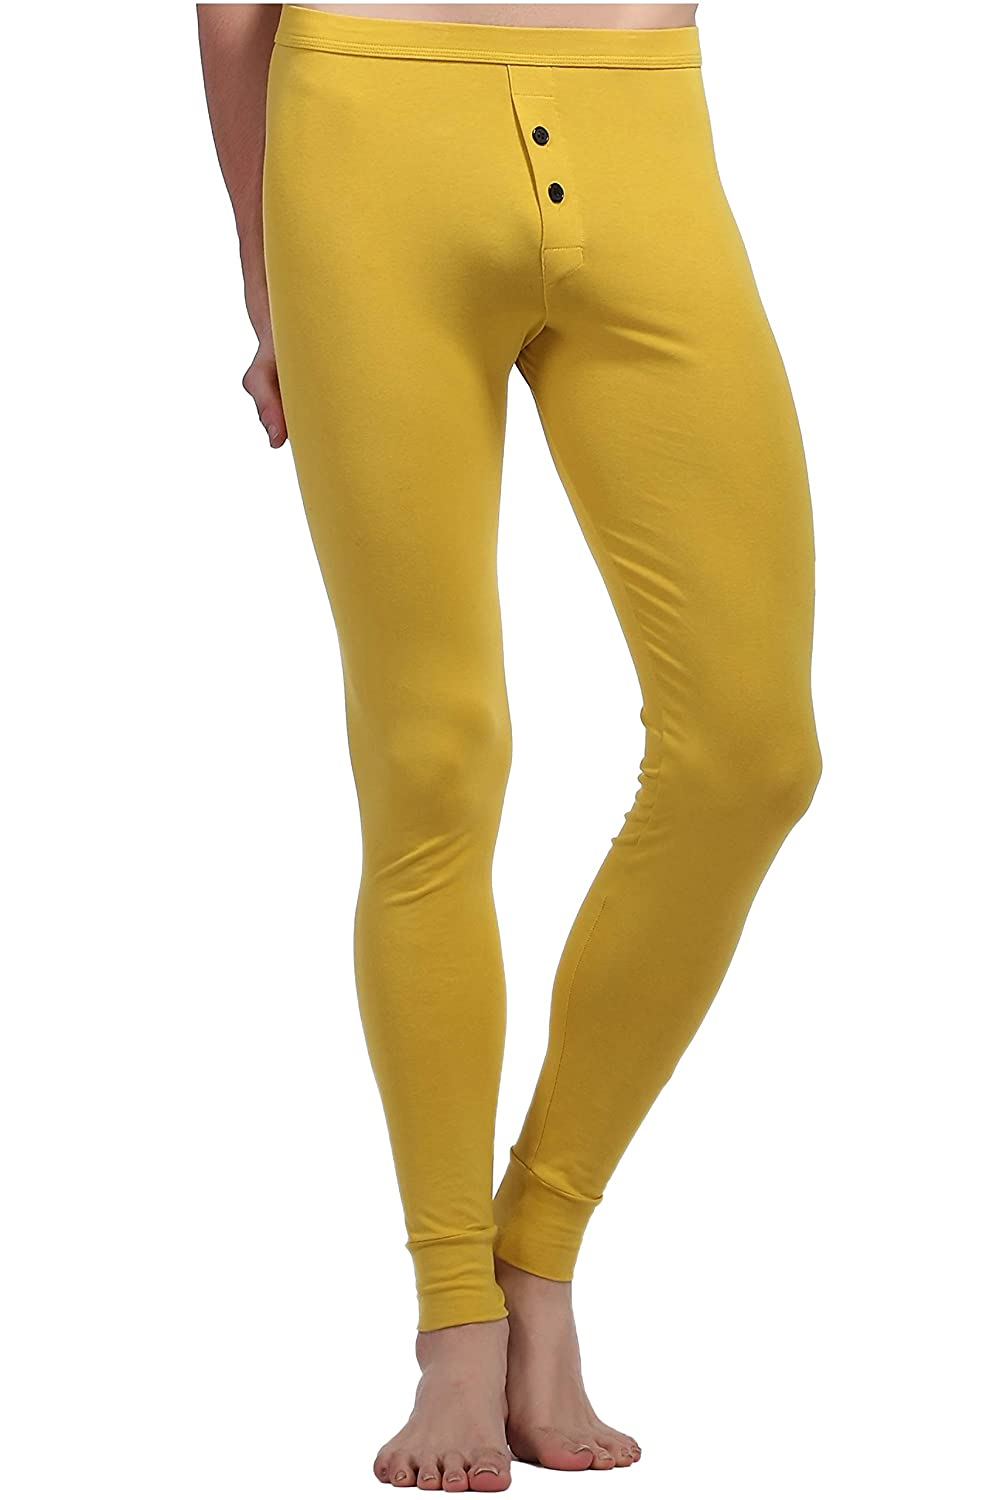 Showtime Mens Skin Tights Compression Base Layer Running Leggings Pants